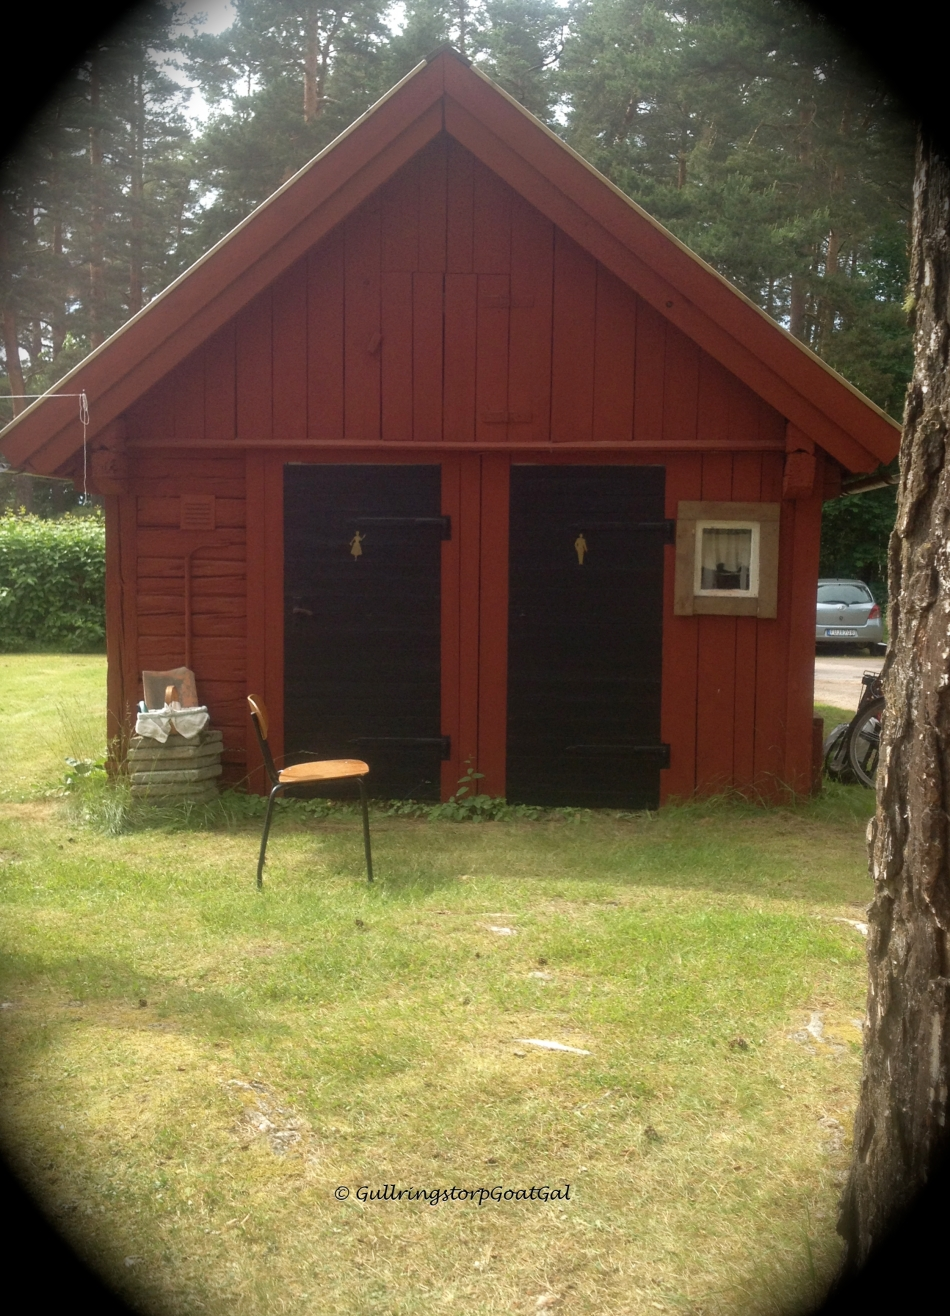 This cute little wooden building is actually a very old Swedish outhouse.